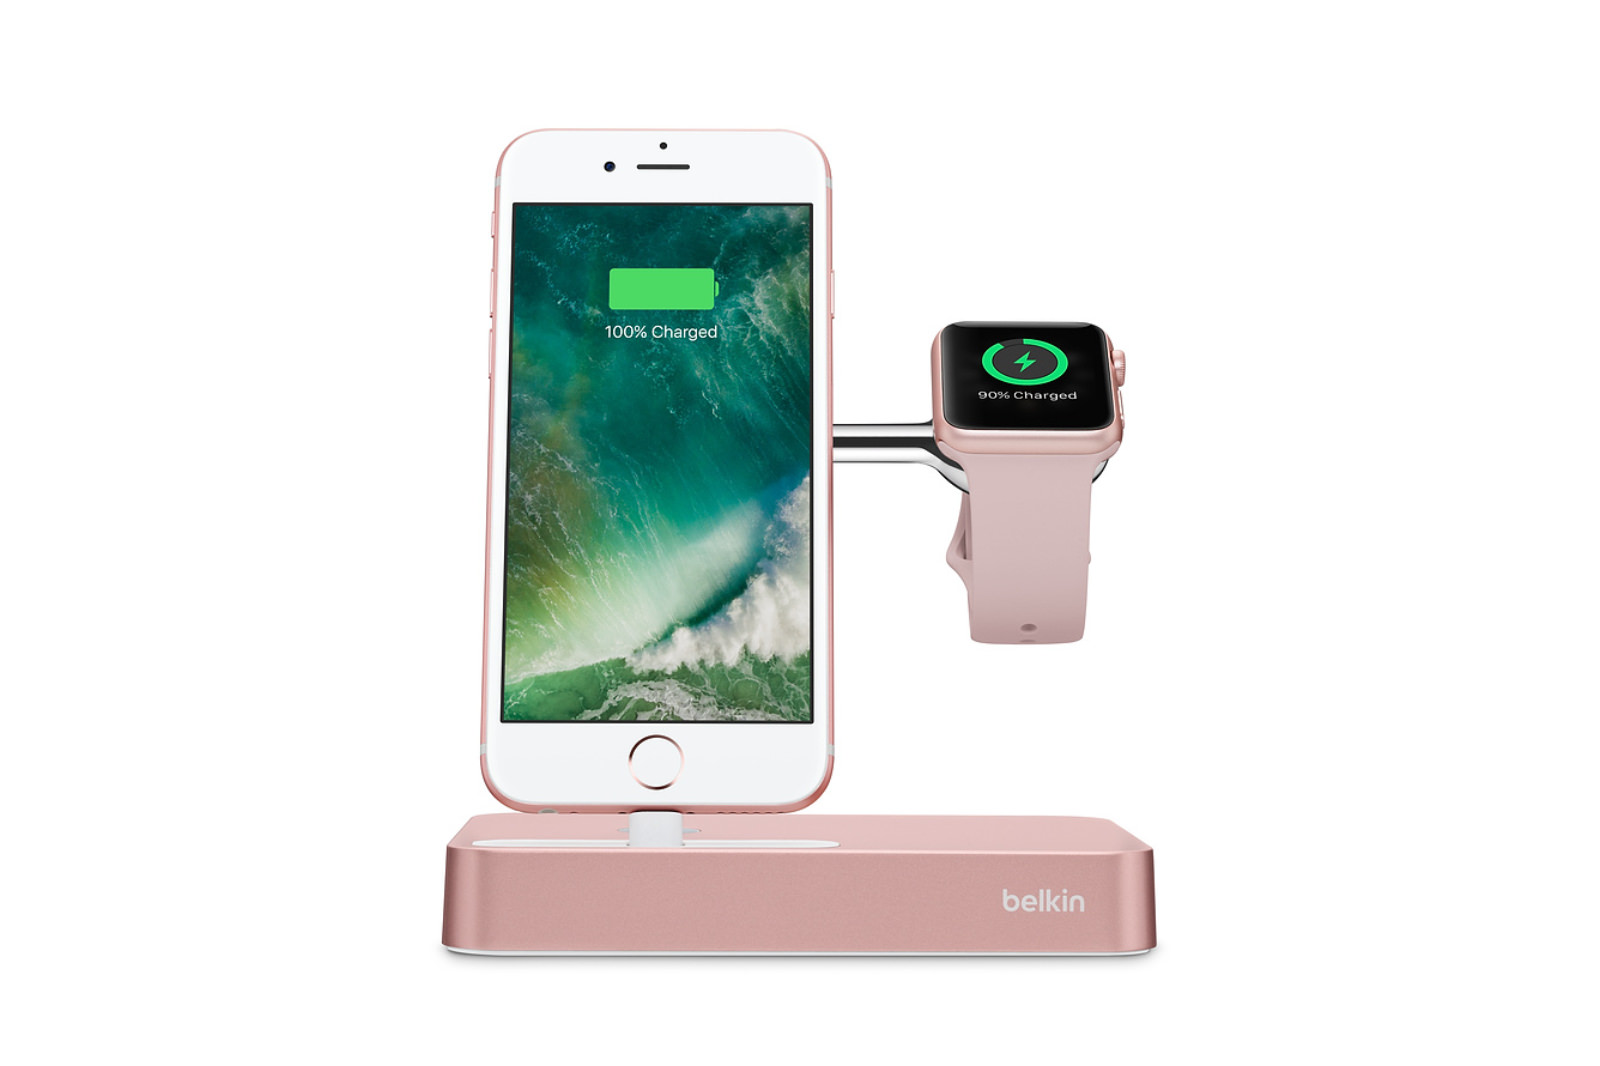 Iphone and apple watch charging stand